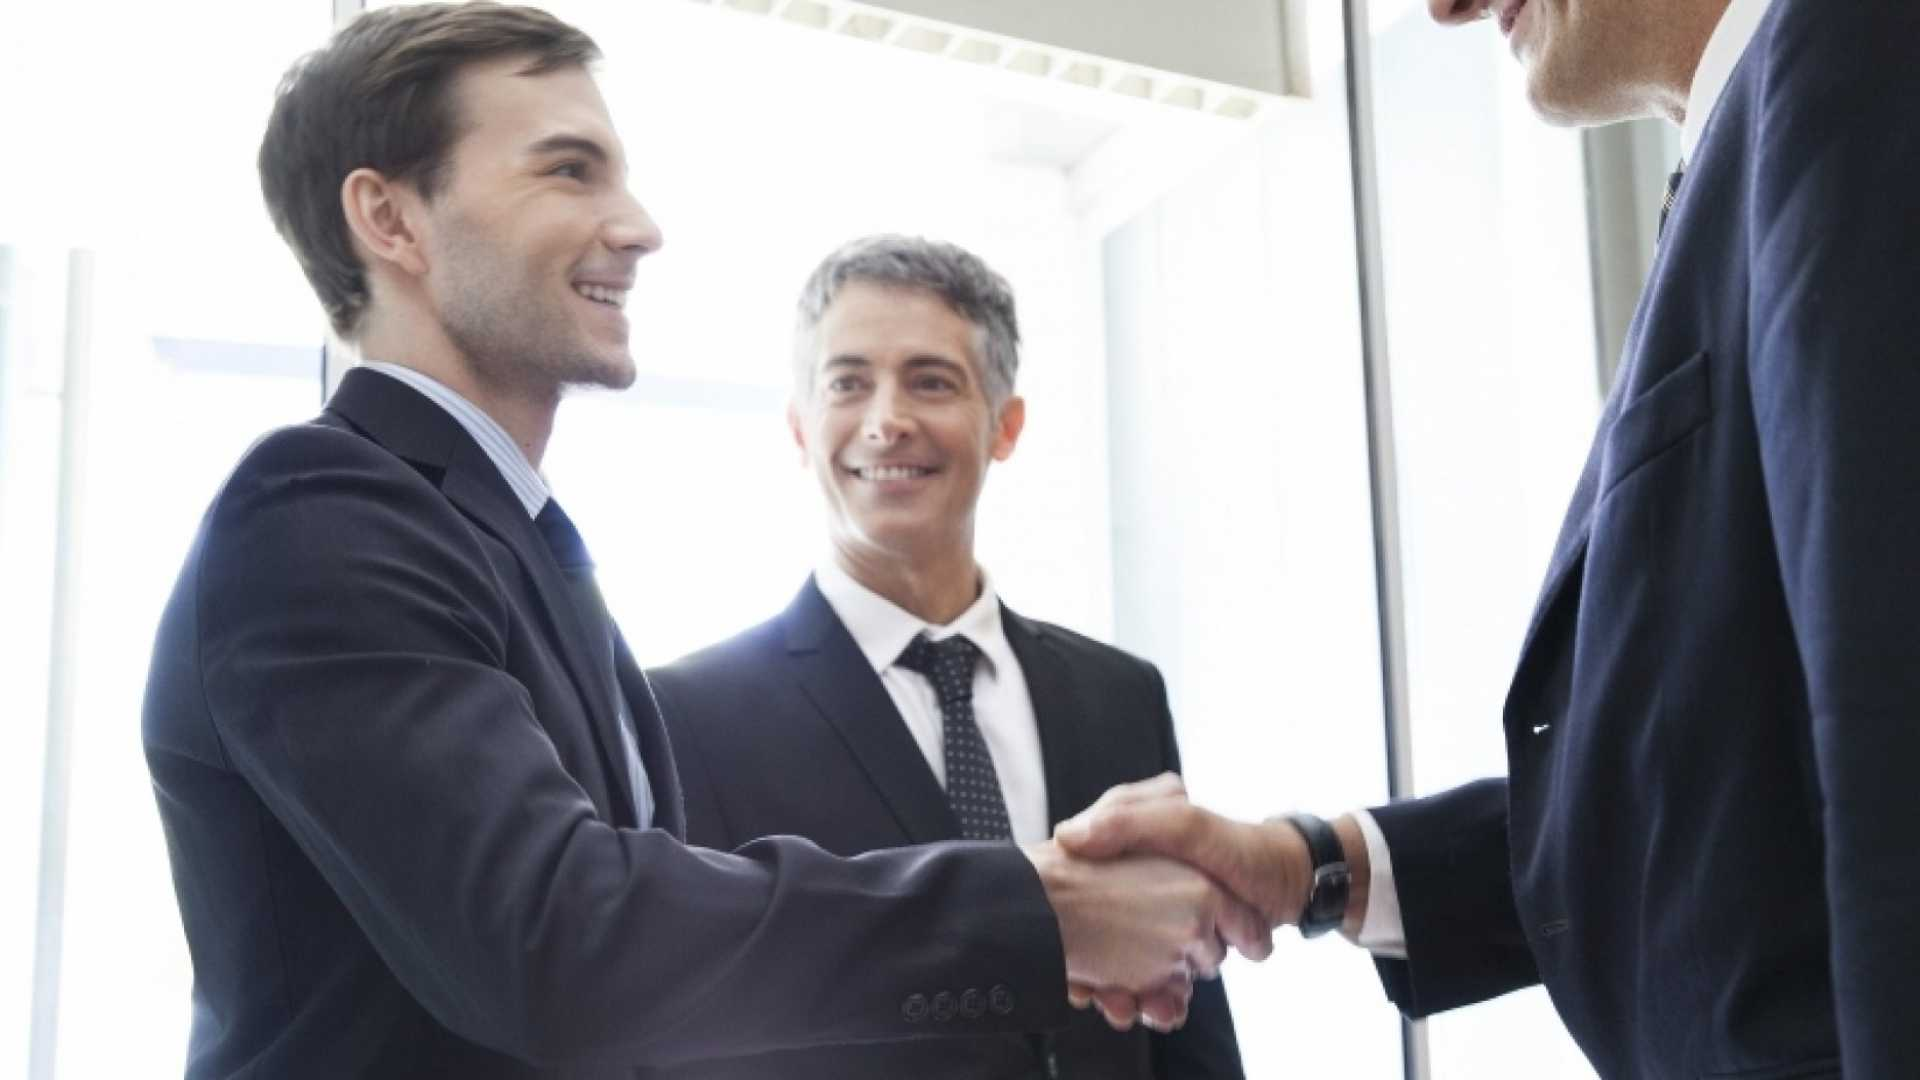 7 Ways to Earn More Respect From Your Boss